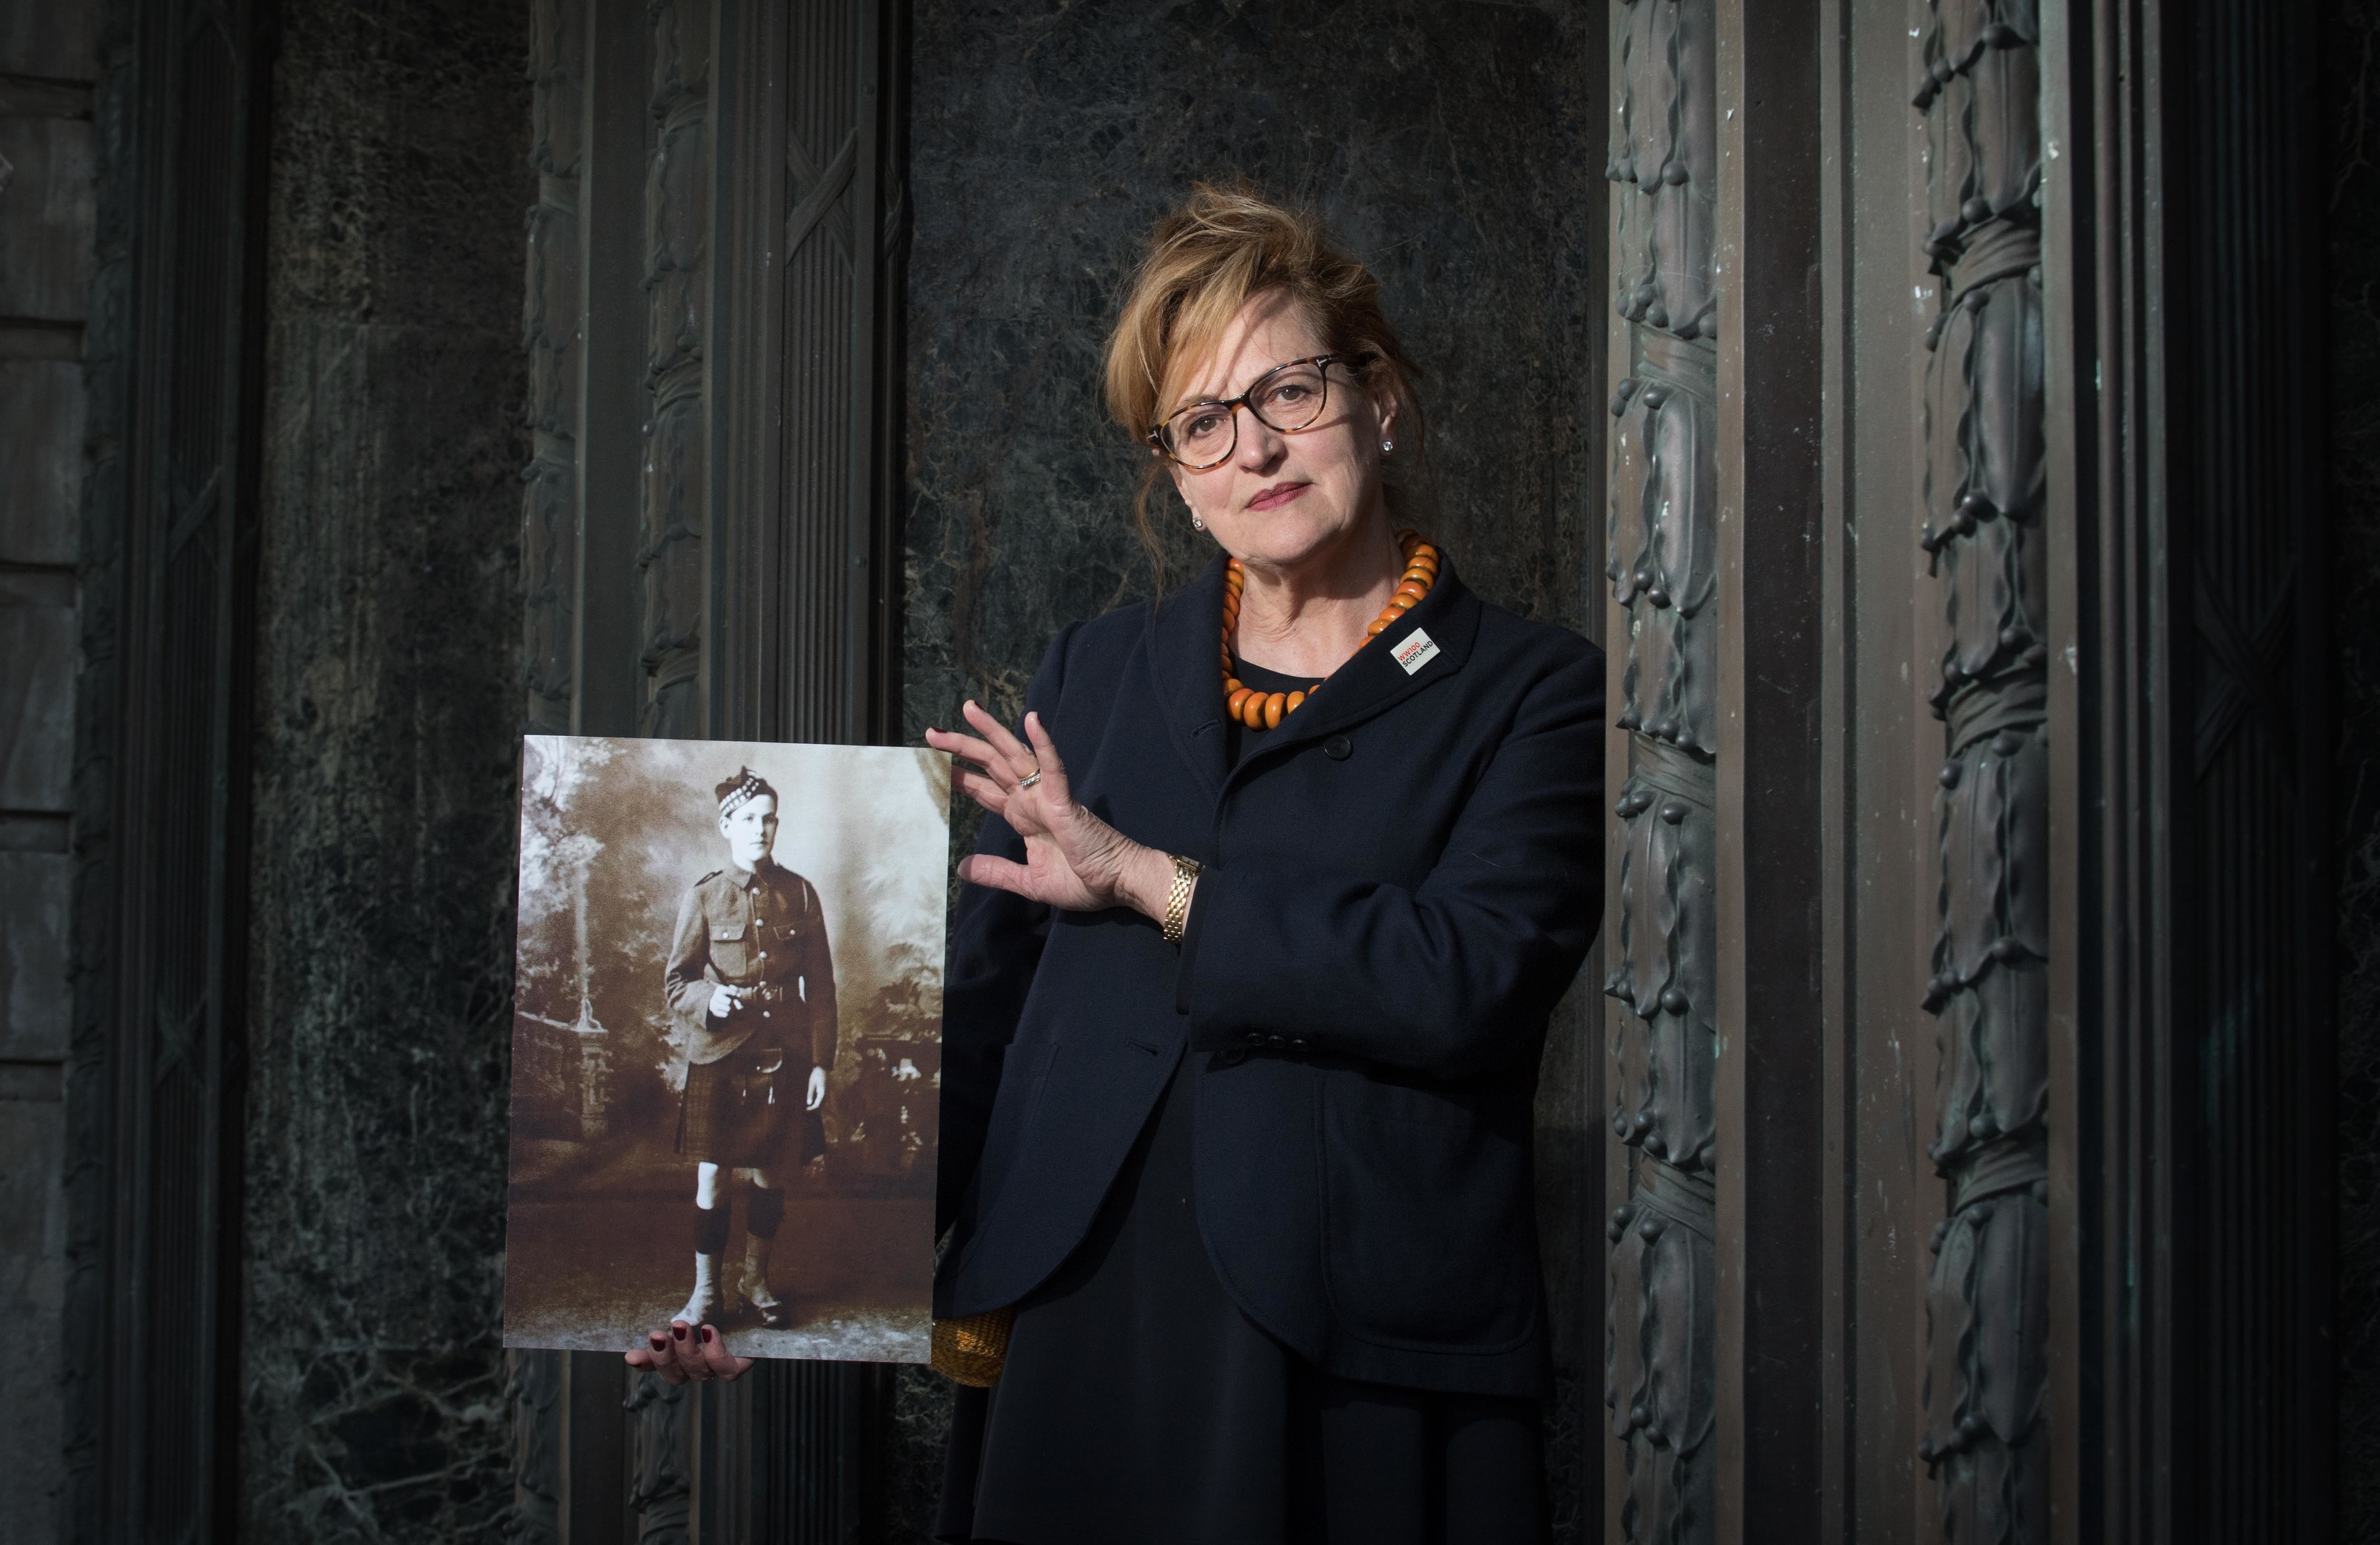 Singer Barbara Dickson takes part in the show in memory of her uncle David Dickson, who enlisted while underage and was killed in the Battle of the Somme in 1916.